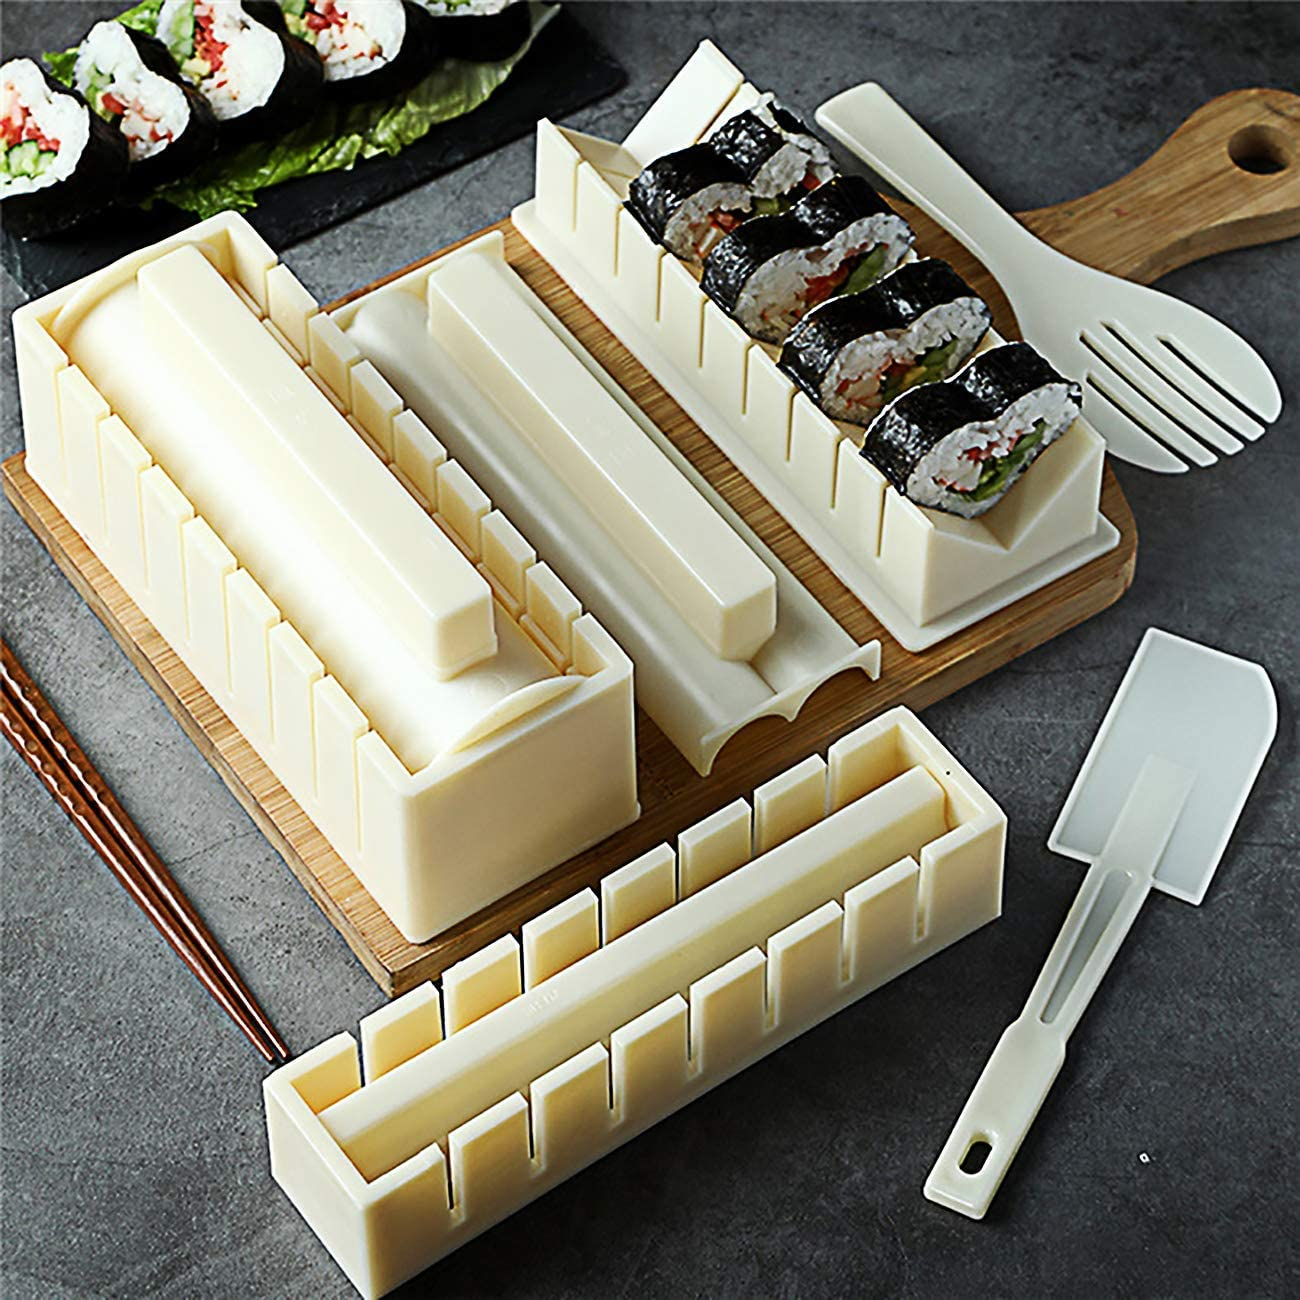 Sushi Omaha Mall Making Kit Tool with Set Free shipping anywhere in the nation Complete Pieces P 10